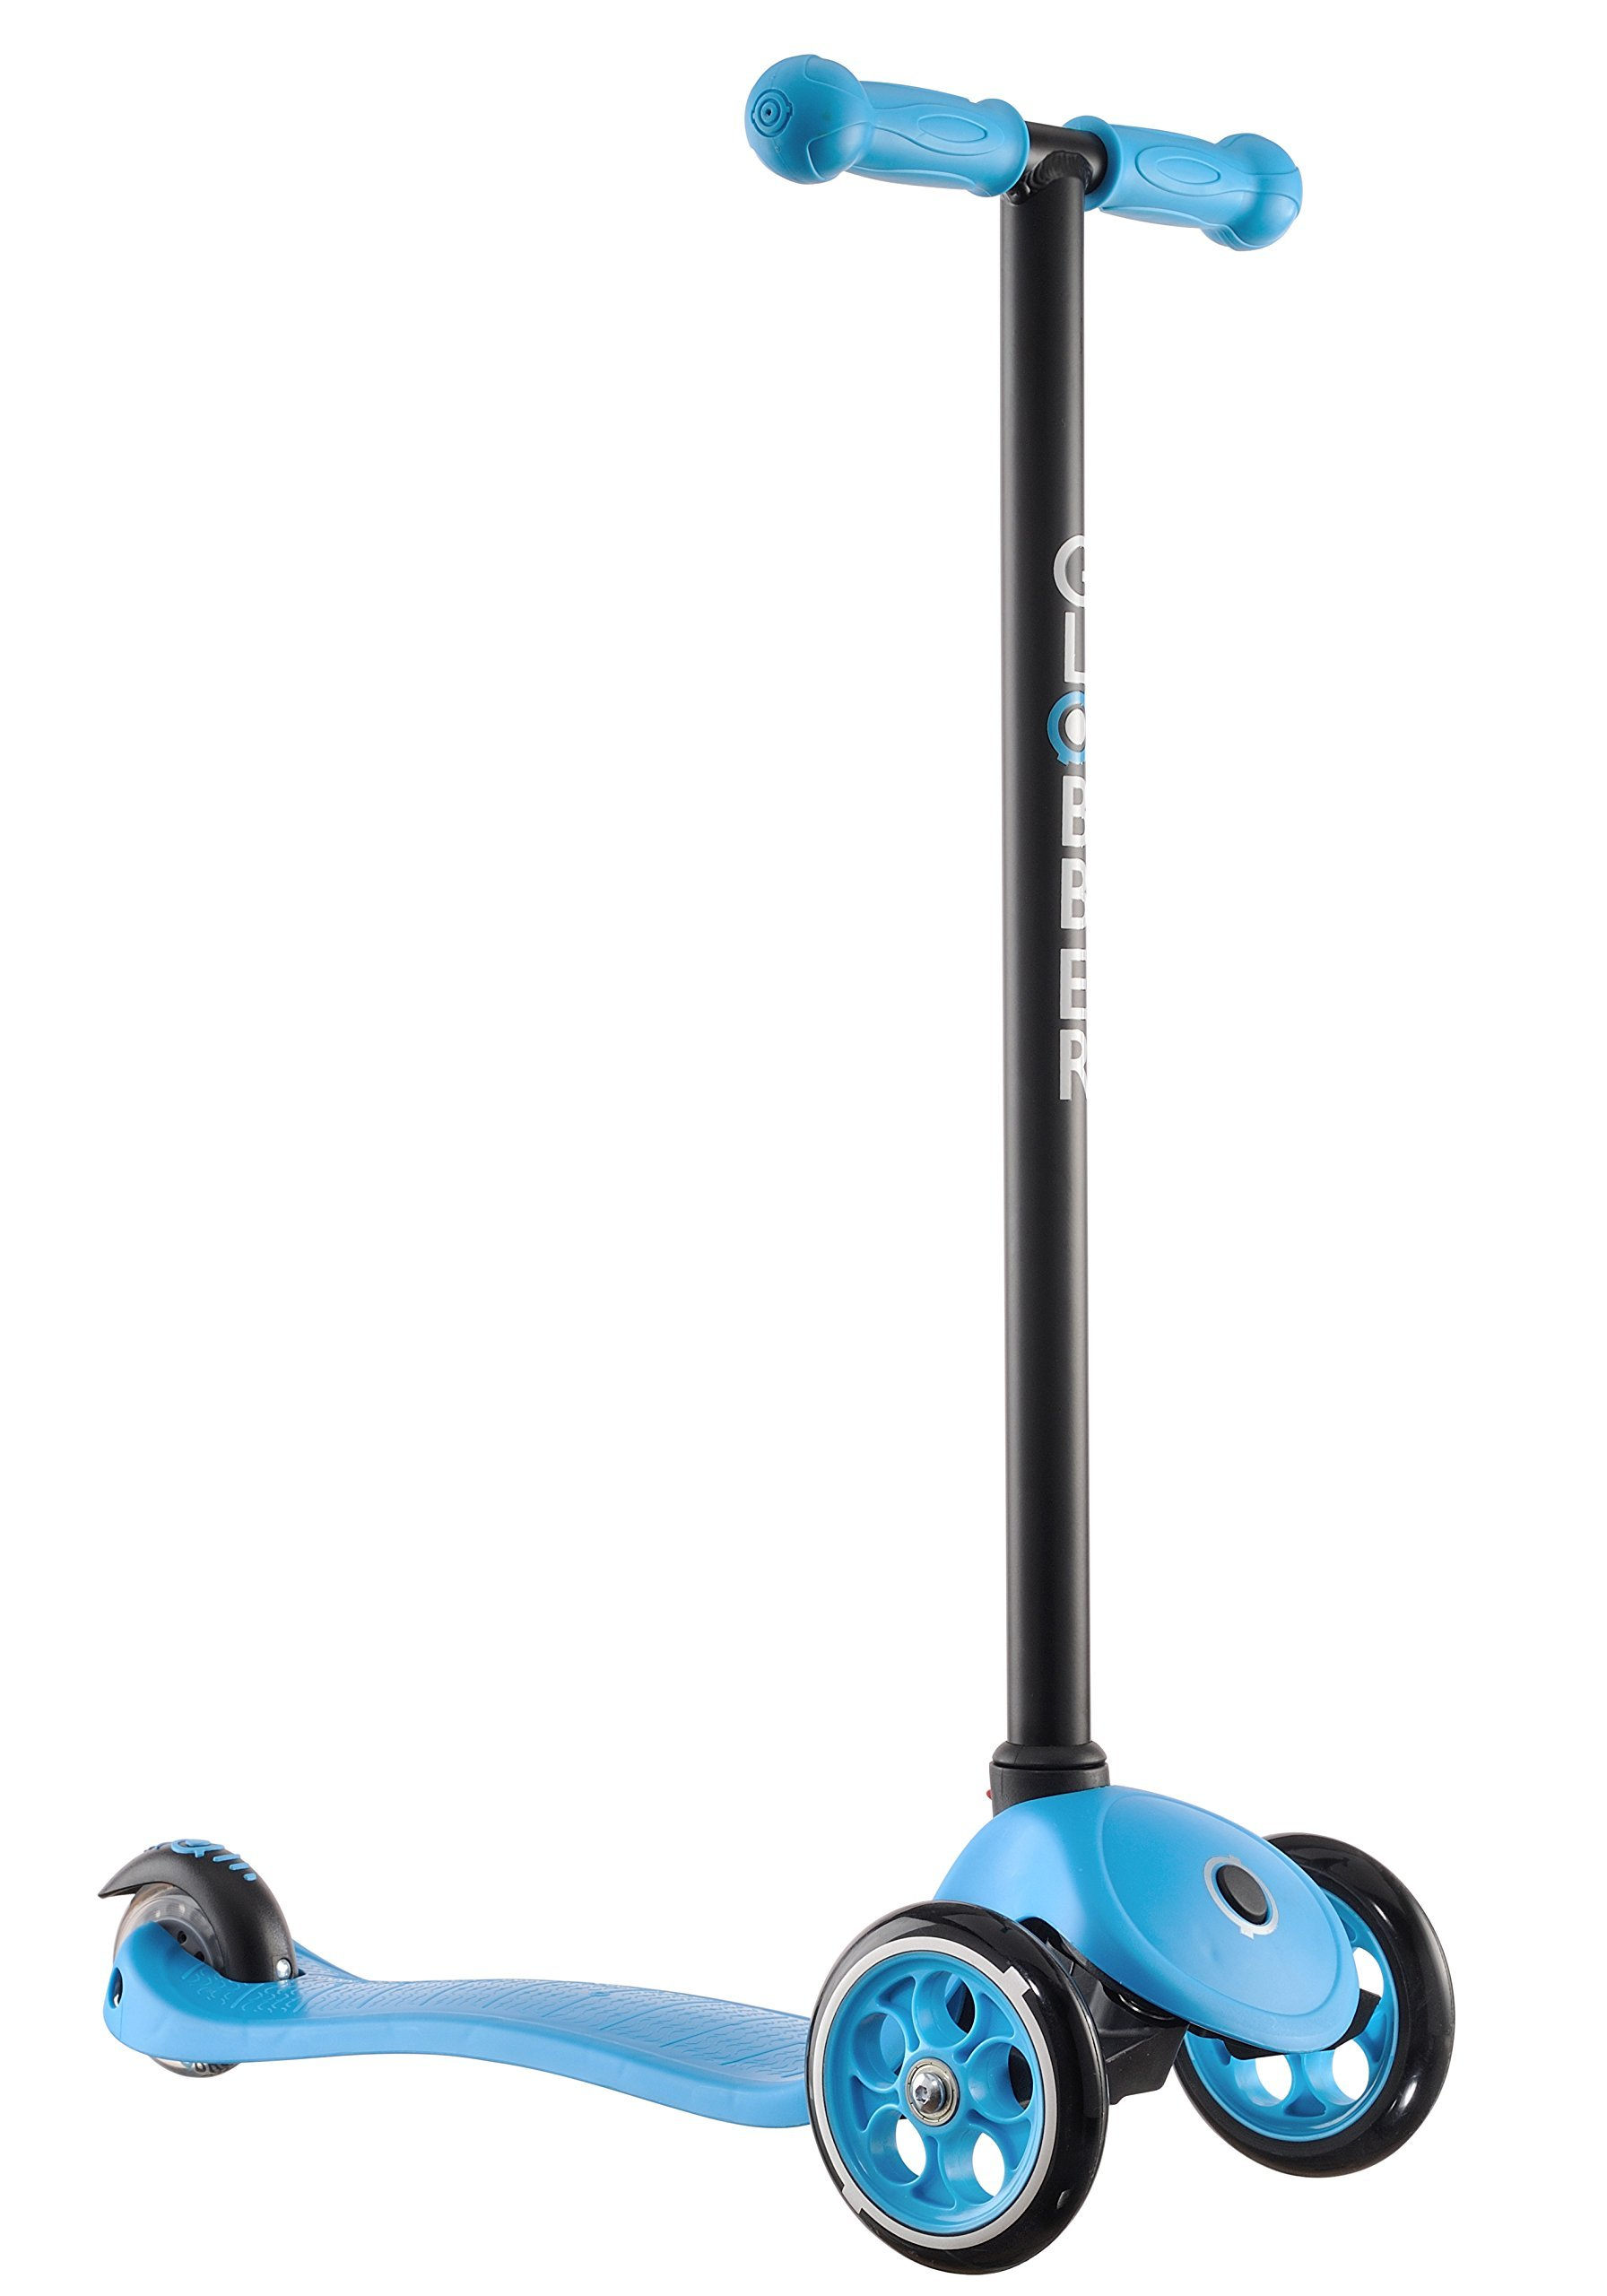 Globber 3 Wheel Kick Scooter with Patented Steering Lock and Optional LED Light Up Wheels (Blue/Black)